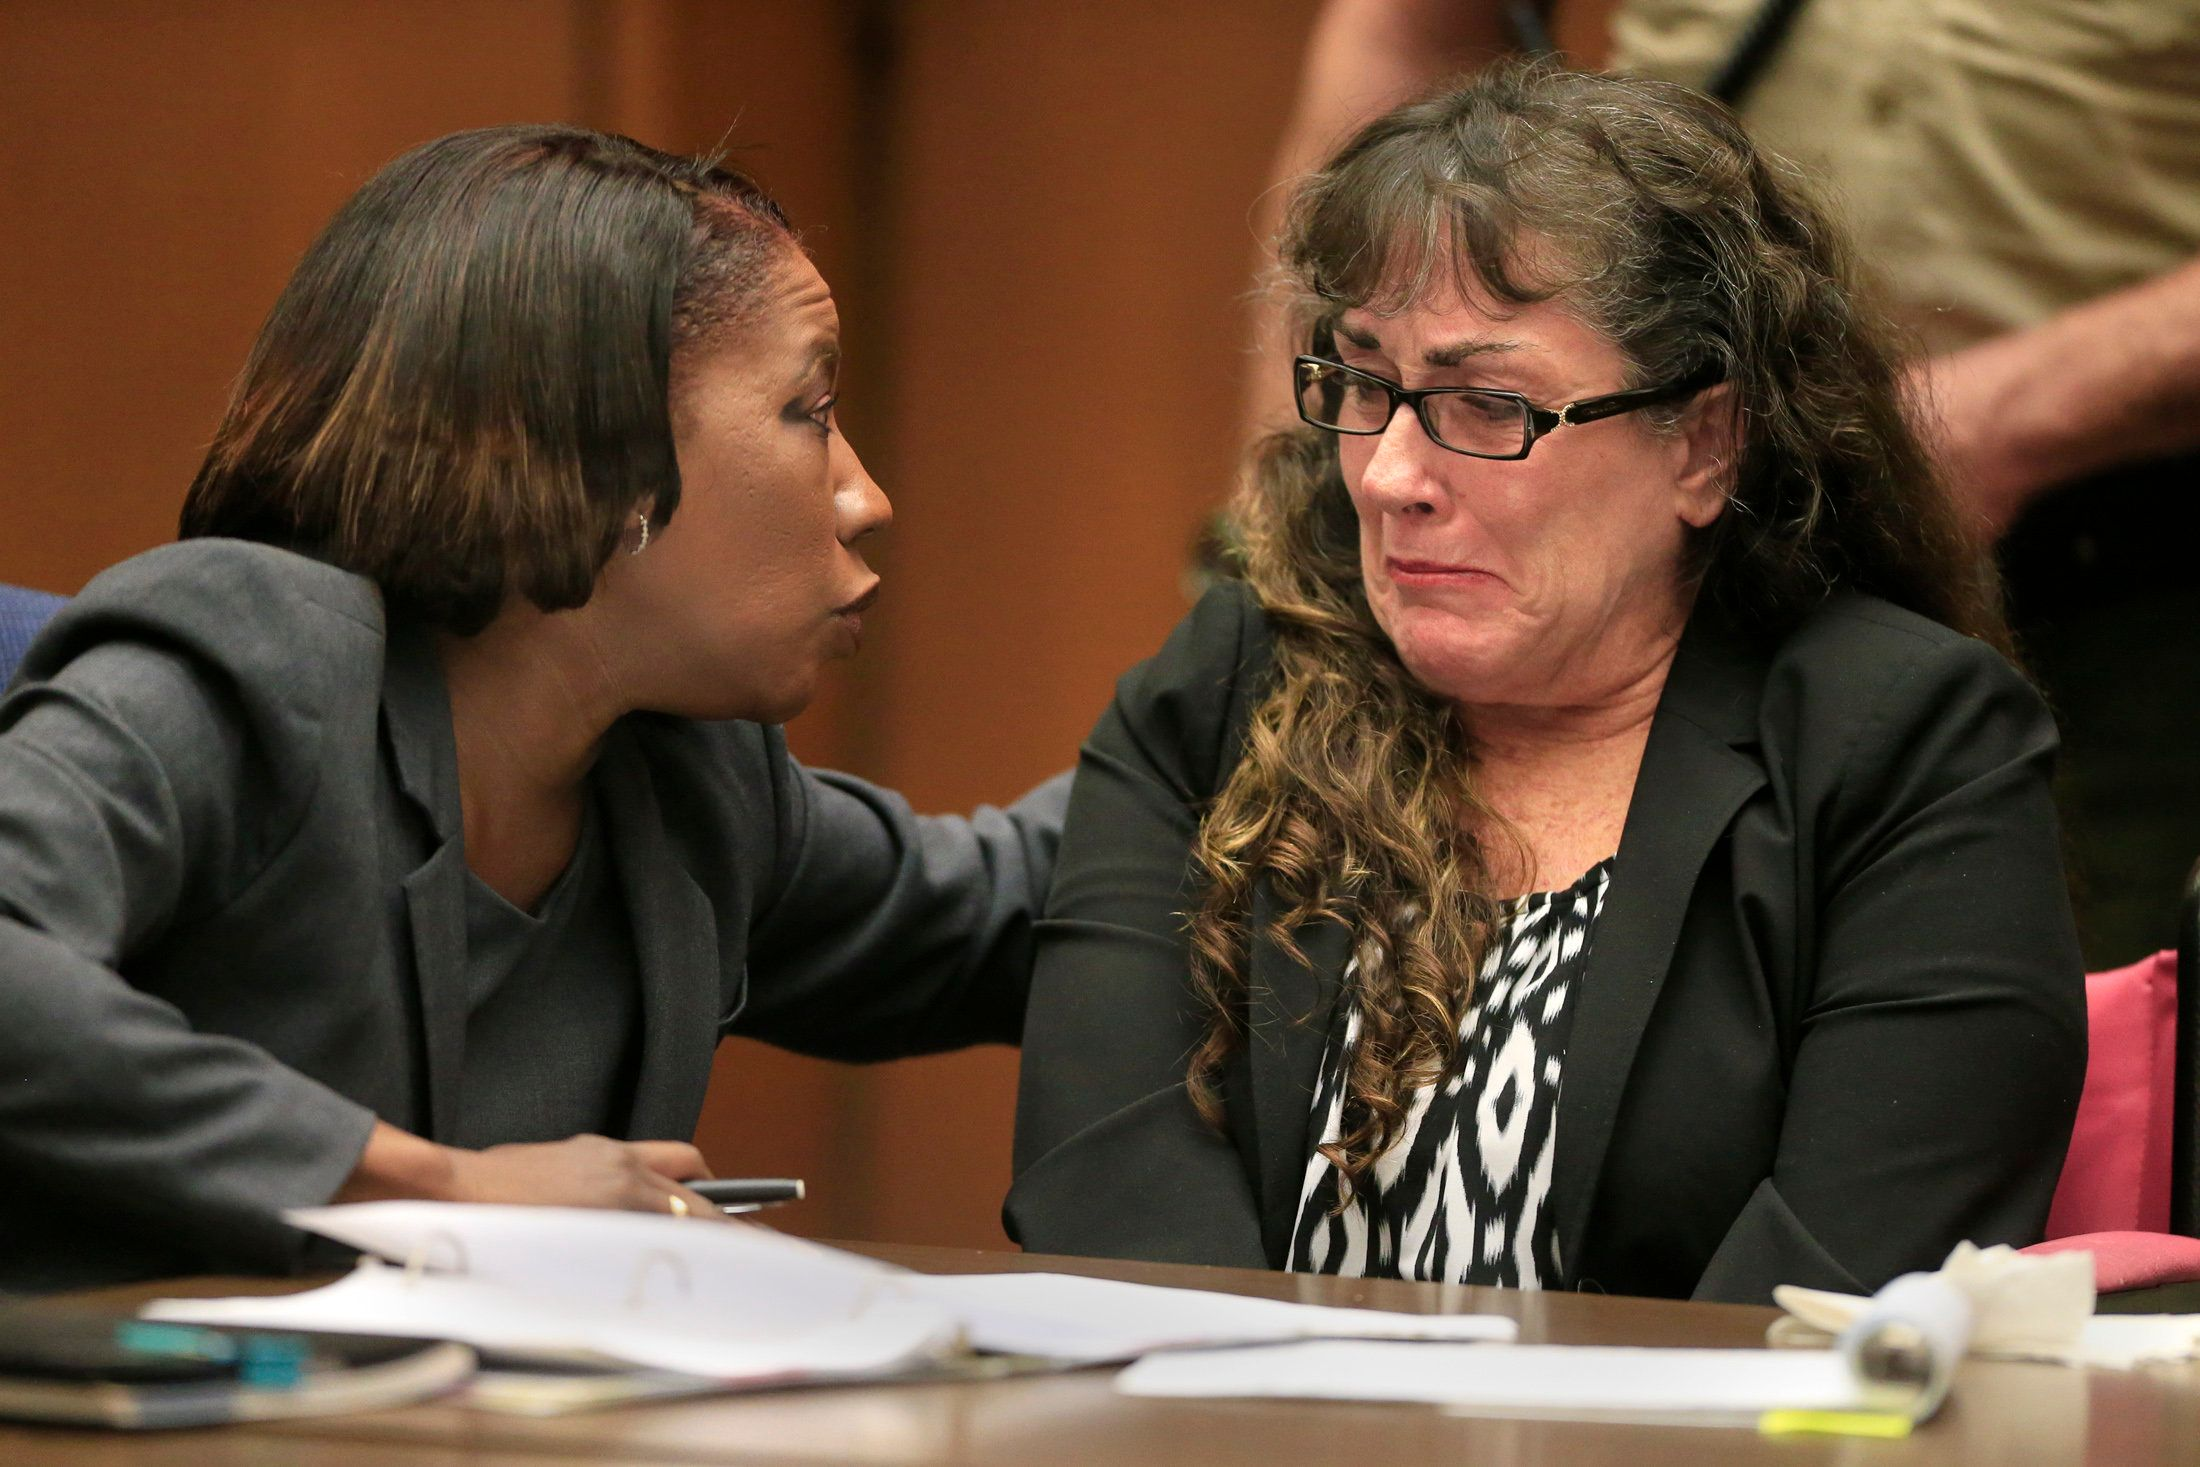 LOS ANGELES,CALIFORNIA, JUNE 12, 2014:  (Left to right) Public Defender Nan Whitfield comforts Sherri Lynn Wilkins, a substance abuse counselor who received a sentence of  55-years-to-life after being convicted of murder and for driving drunk in the death of 31-year-old Phillip Moreno. Wilkins hit Moreno then drove for about two miles with the victim embedded in her windshield June 12, 2014 (^^^ / Los Angeles Times ).  (Photo by Mark Boster/Los Angeles Times via Getty Images)